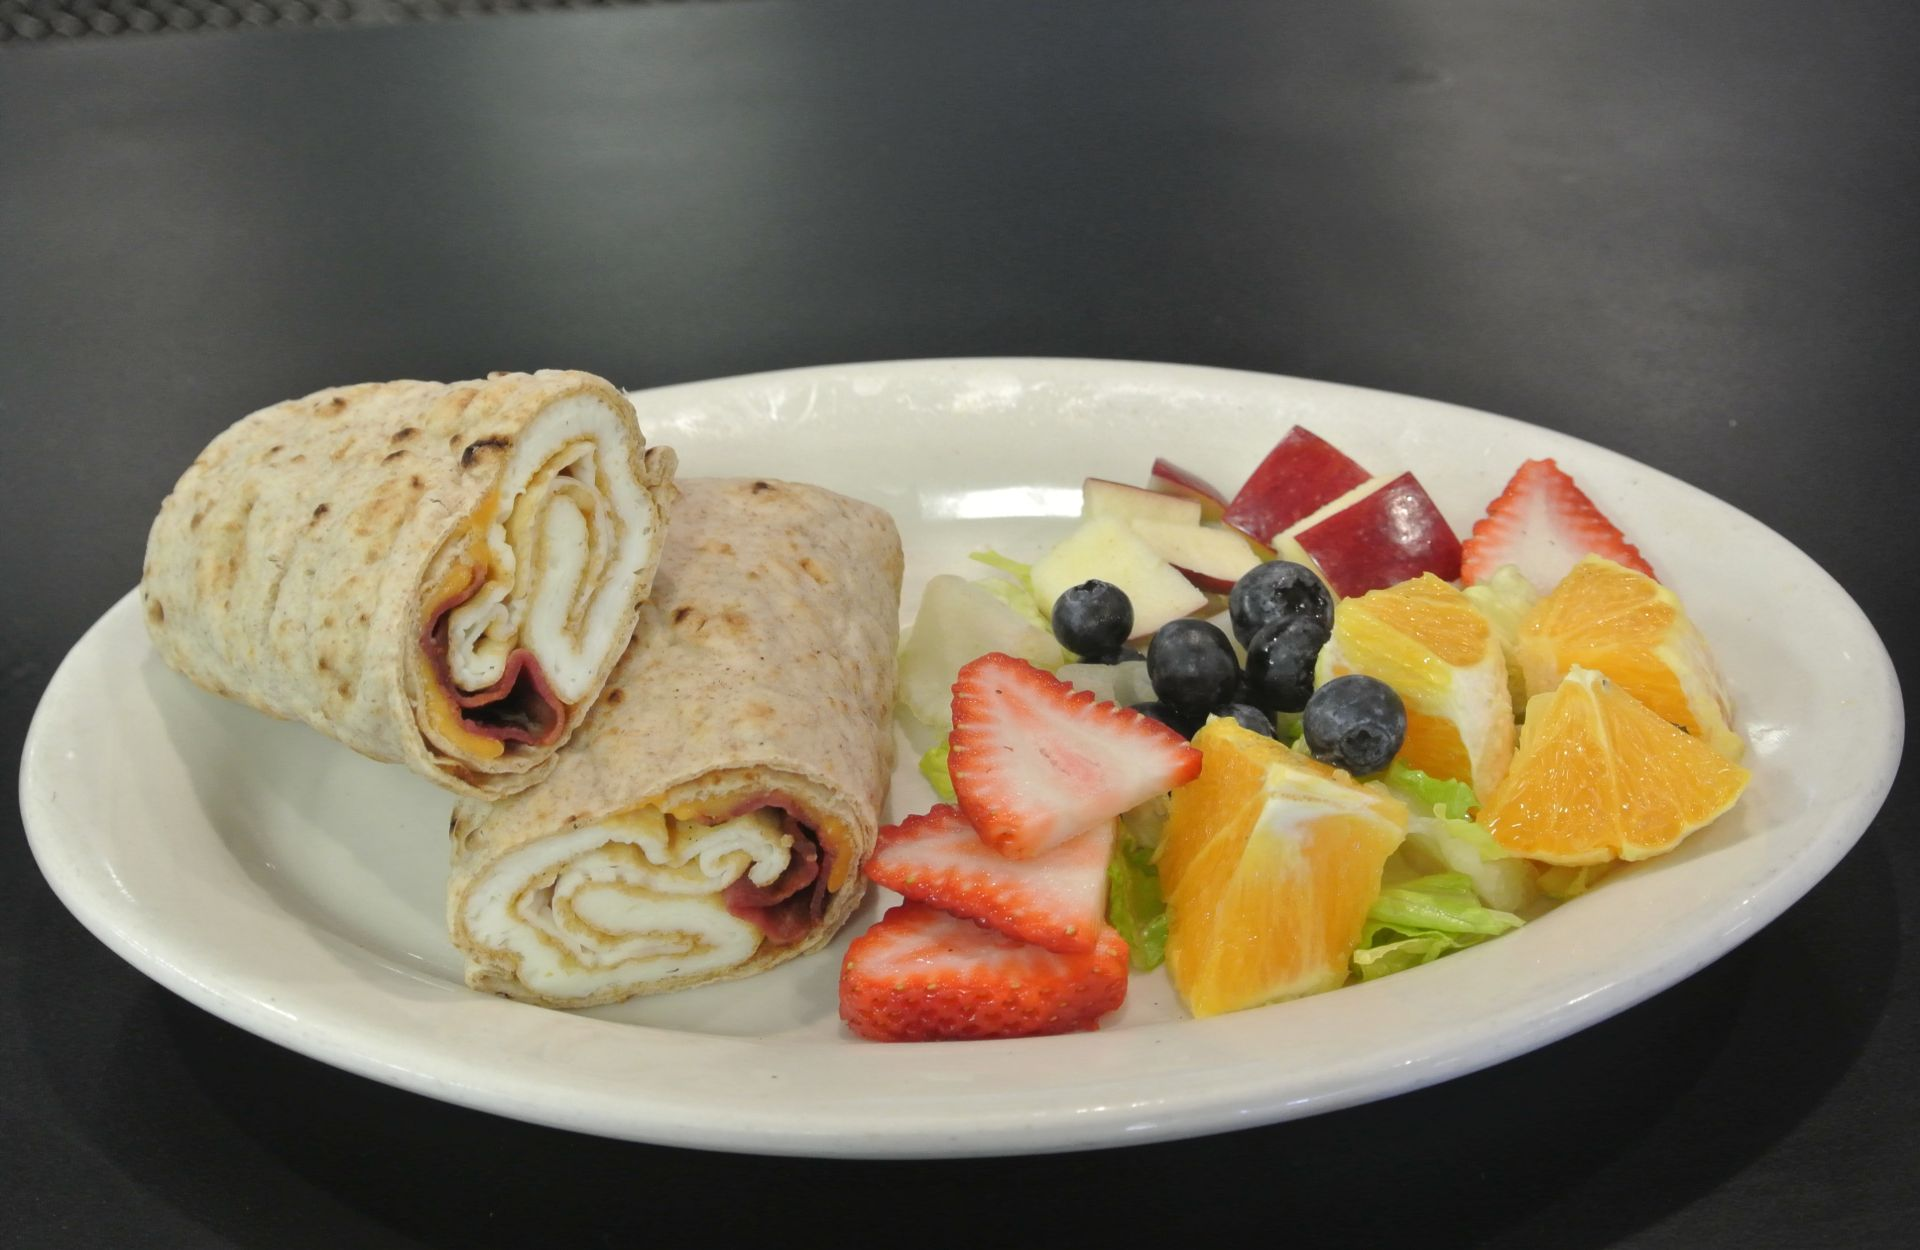 Breakfast burrito with egges and bacon in a wrap with fresh cut fruits